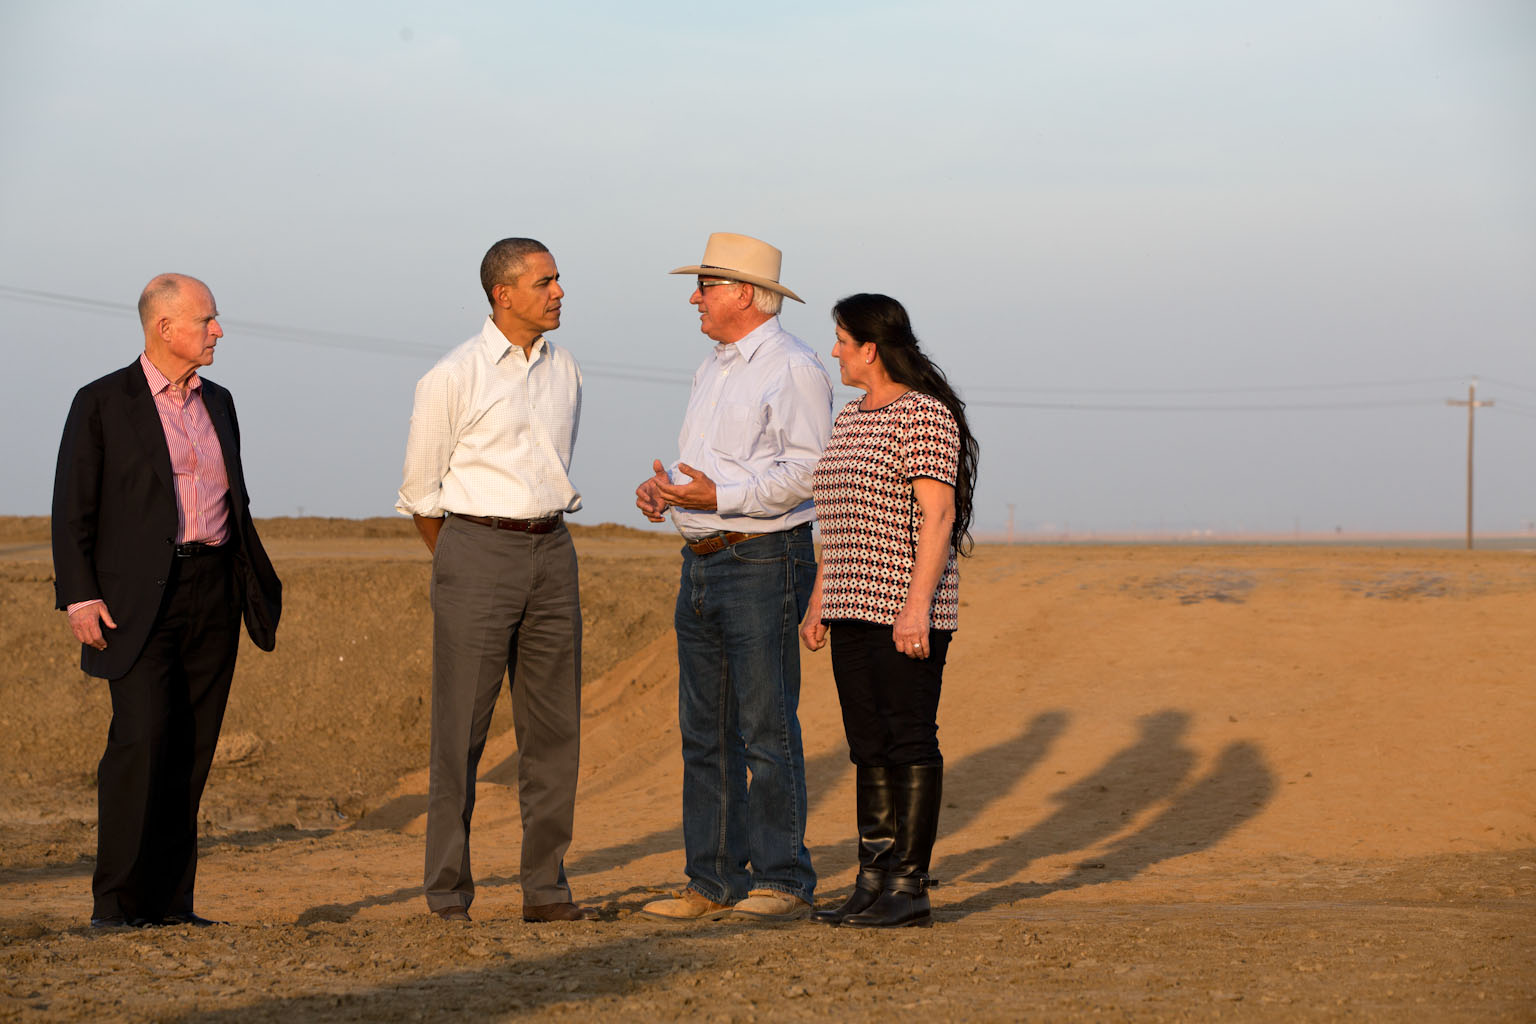 File:Barack Obama speaks with farmers about California drought, 2014.jpg